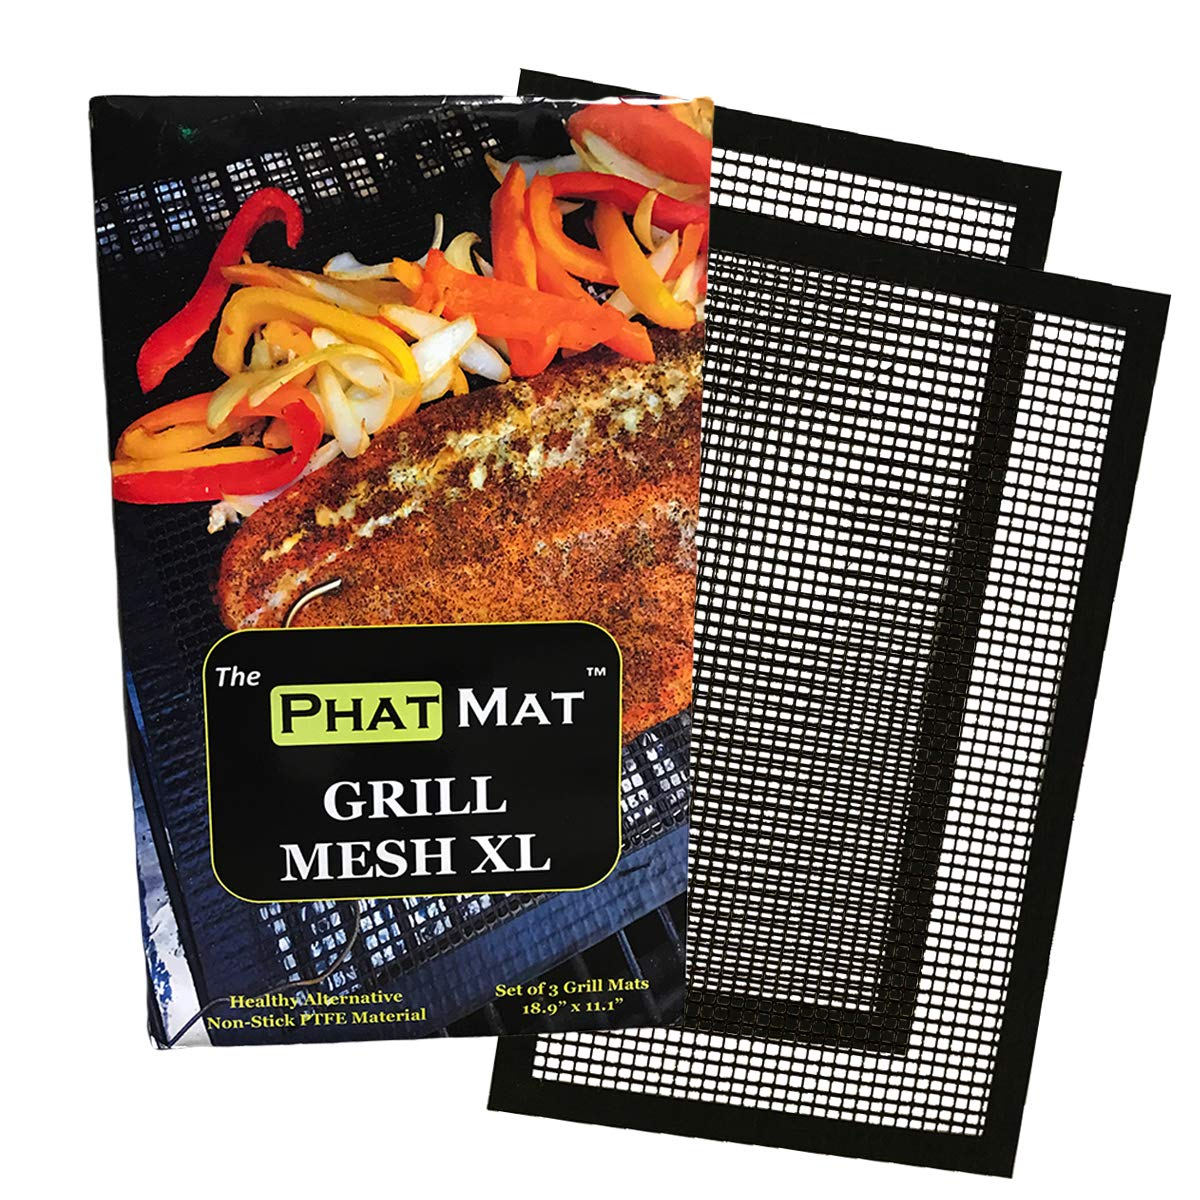 PhatMat Non Stick Grill Mesh Mats XL - Set of 2 - Nonstick Heavy Duty BBQ Grilling & Baking Accessories for Traeger, Rec Tec, Green Mountain, Smoker & Oven - 19 inches x 11 inches - Free Temp Guide by PhatMat